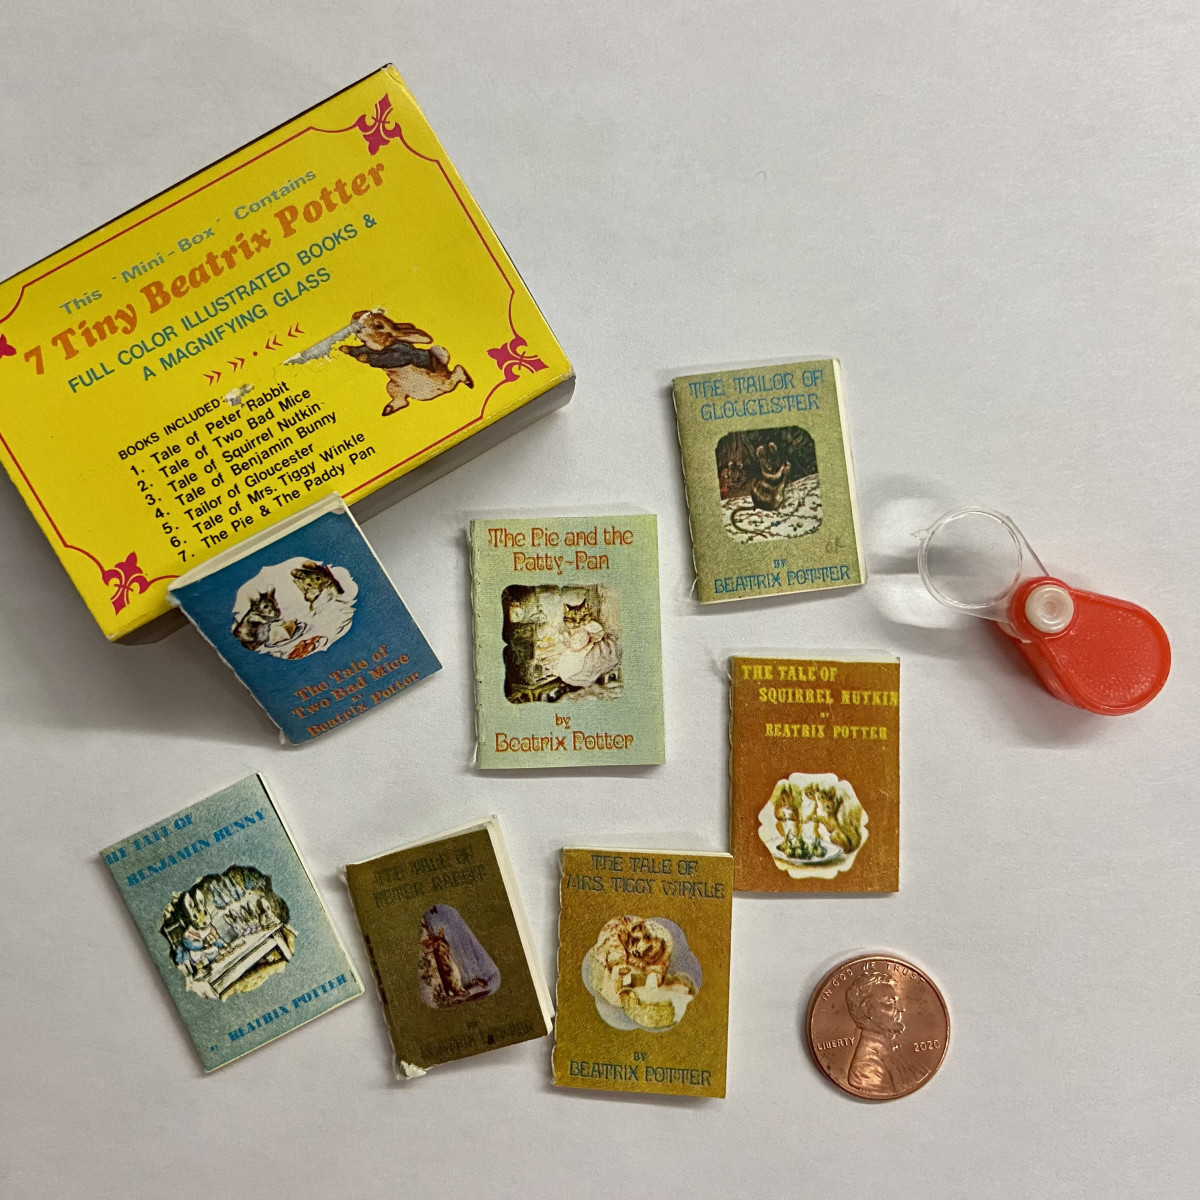 """A set of """"7 Tiny Beatrix Potter"""" books that are so tiny, it takes the included magnifying glass to read them; New York: Merrimack Publ. Corp., circa 1970 [unlicensed]."""